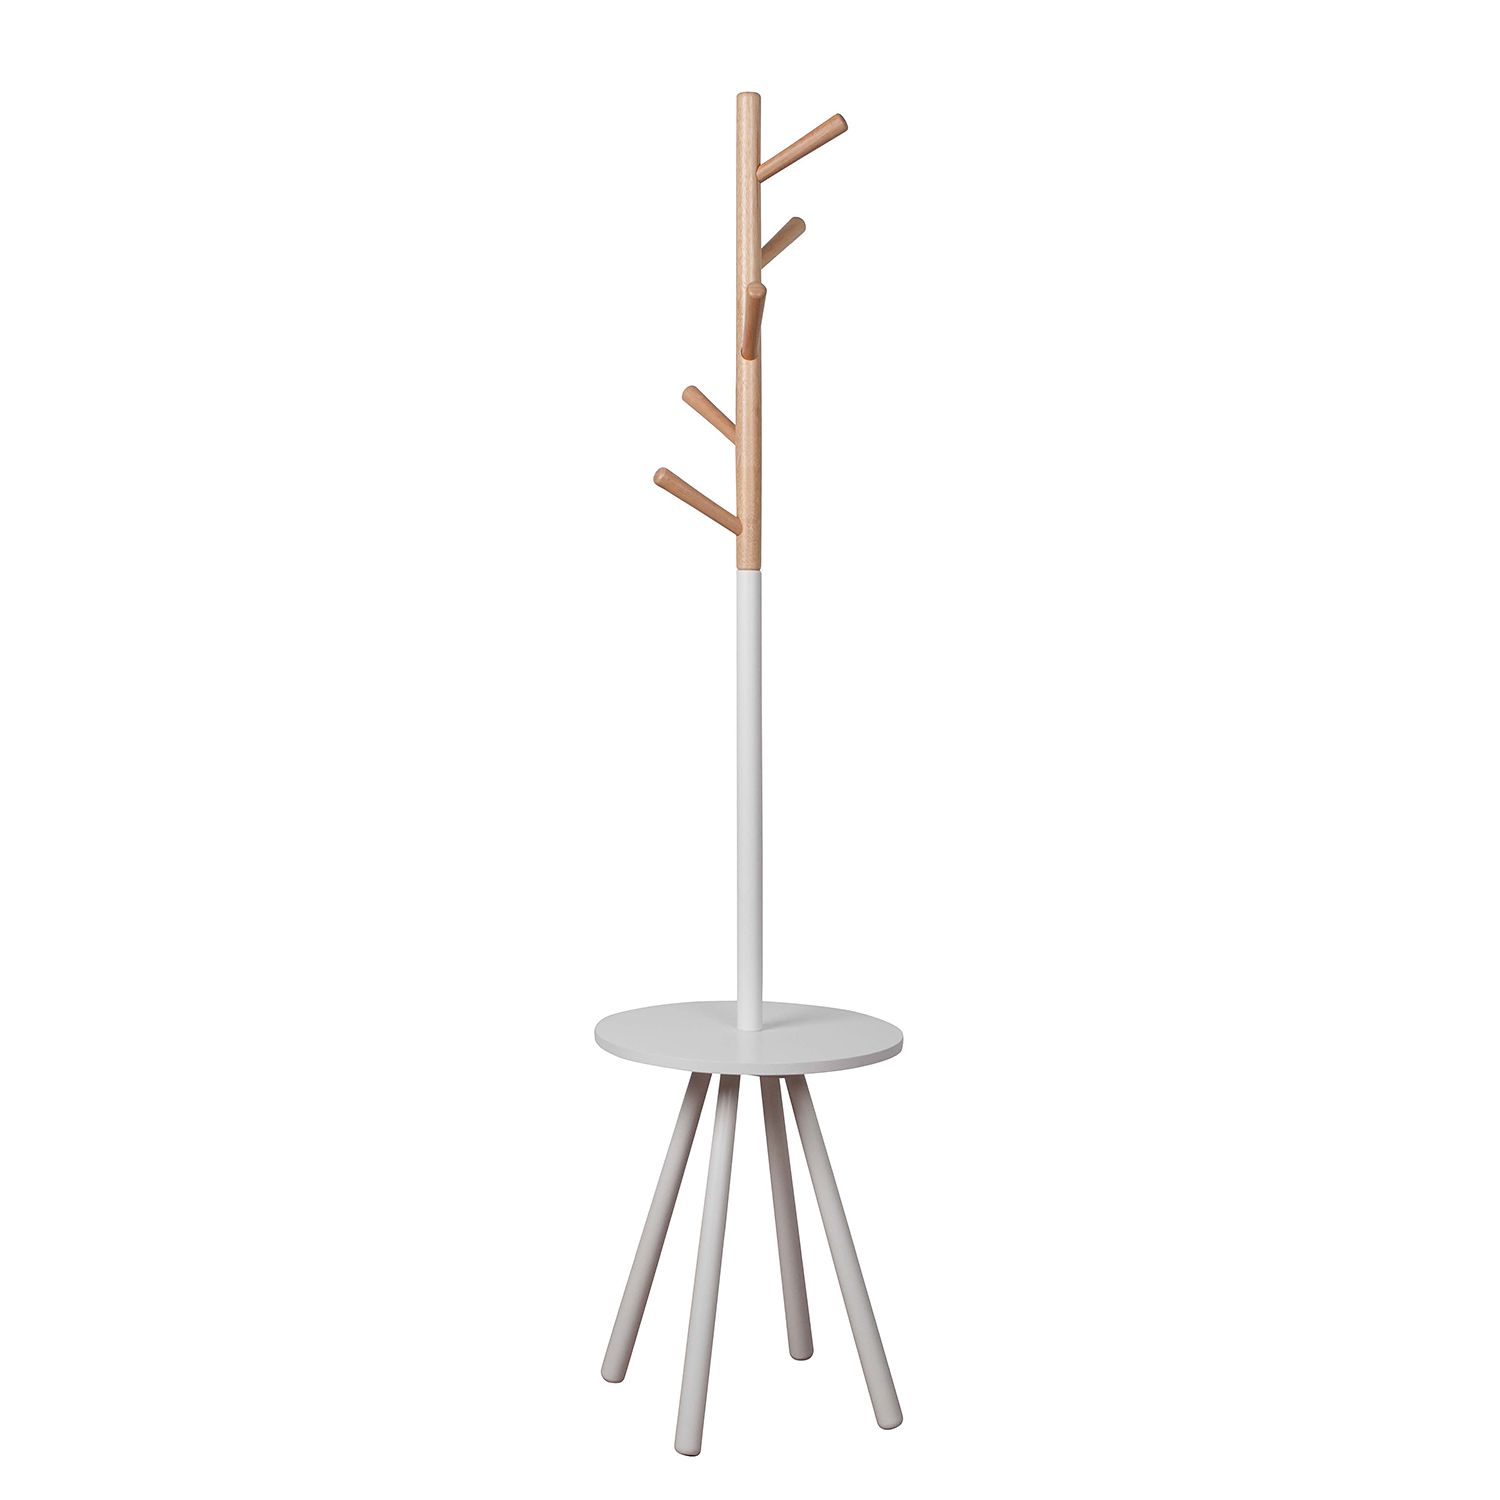 Staande kapstok Table Tree - wit beige, Zuiver